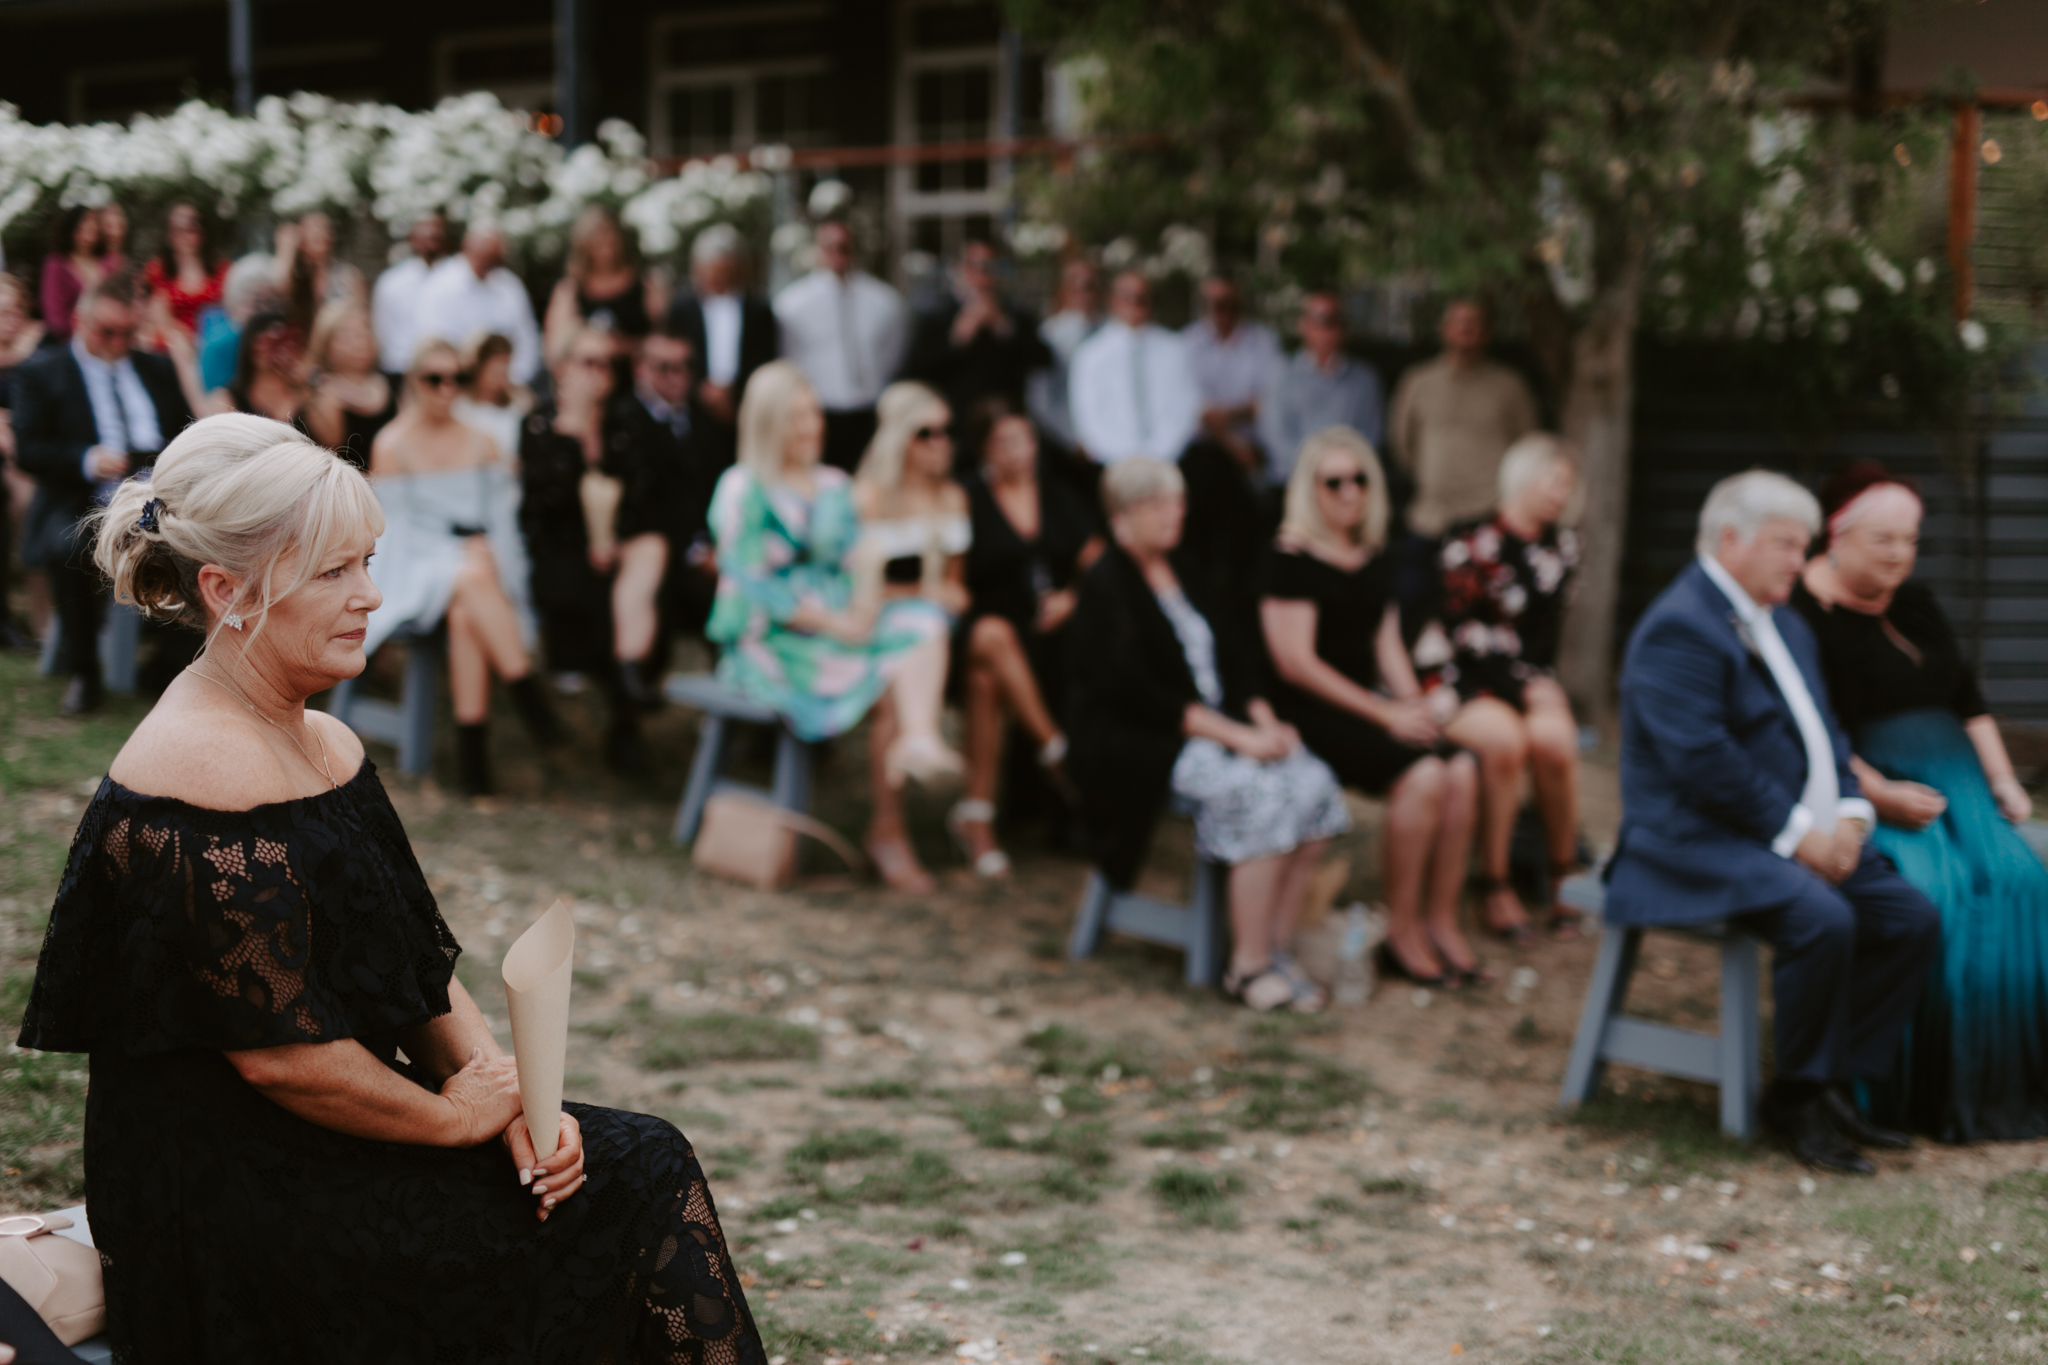 The-Riverstone-Estate-Wedding-Emotions-and-Math-050.jpg